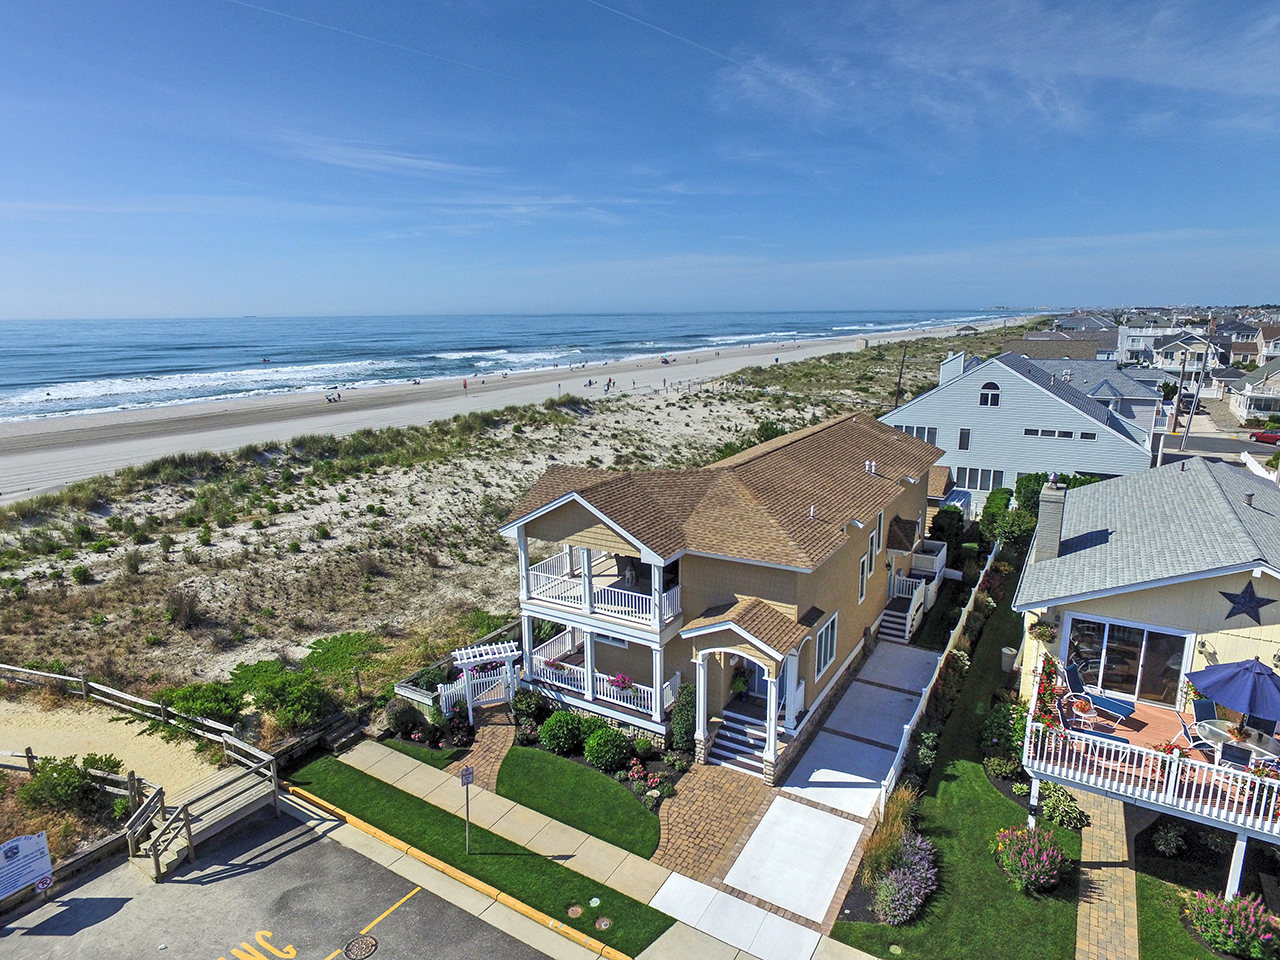 2109 Dune Drive Unit A - Avalon, NJ